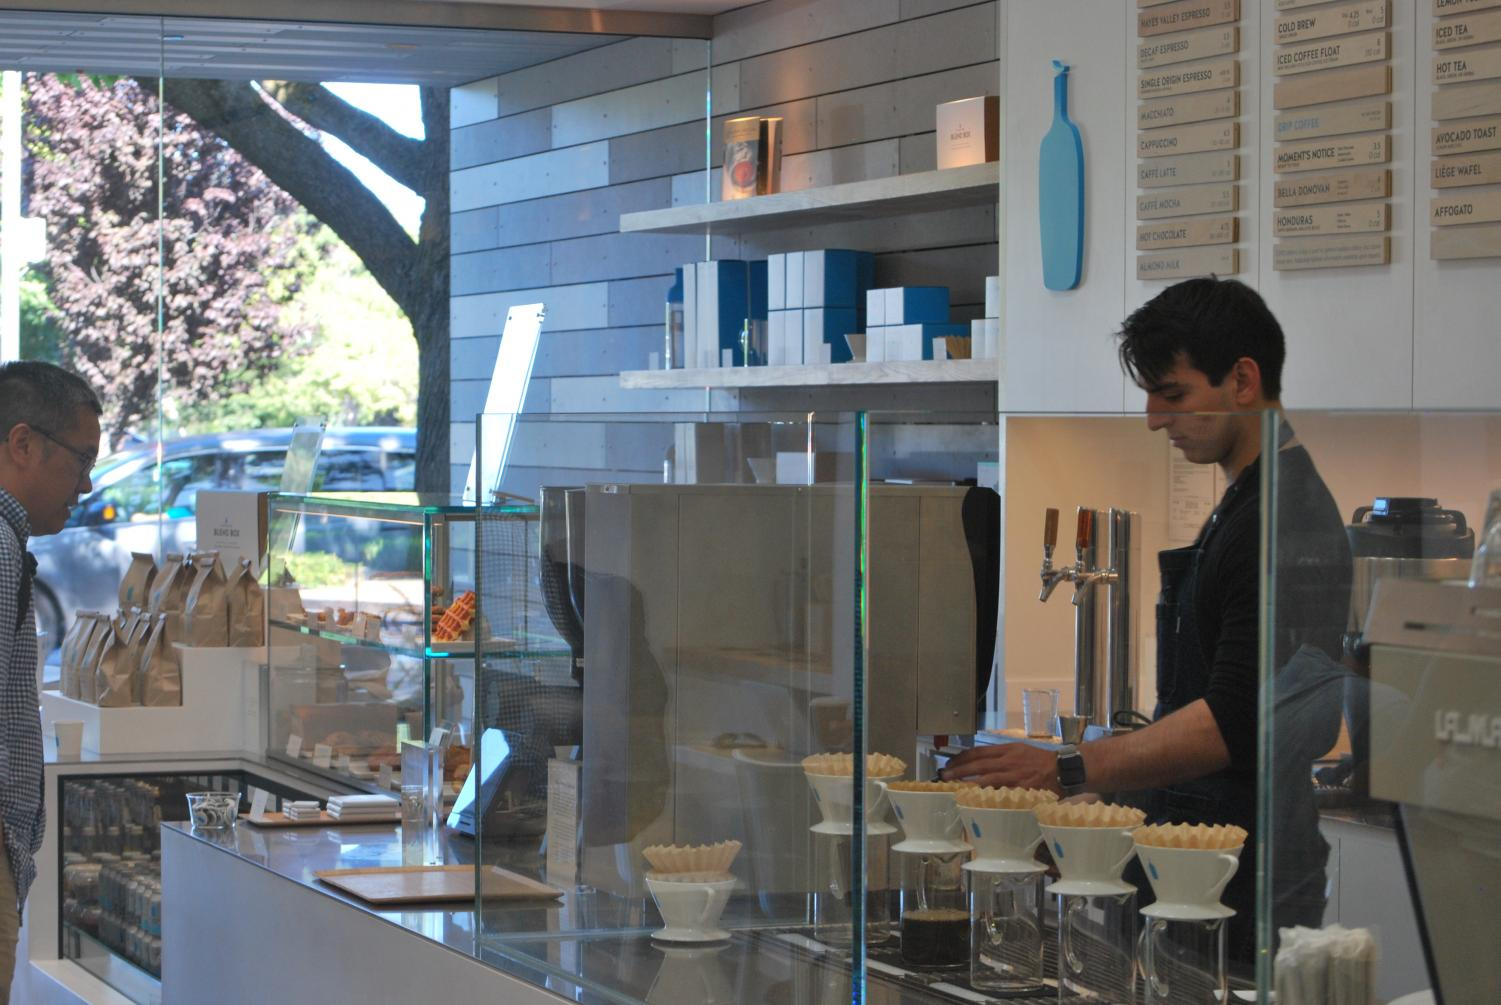 """A customer waits to order at the recently opened Blue Bottle Coffee shop at Stanford Shopping Center. Customer Gabbi Irwin says she thinks the location is convenient and plans to come frequently. """"I really like the atmosphere of the place,"""" Irwin said. """"It's really nice."""" Photo: Hallie Faust"""